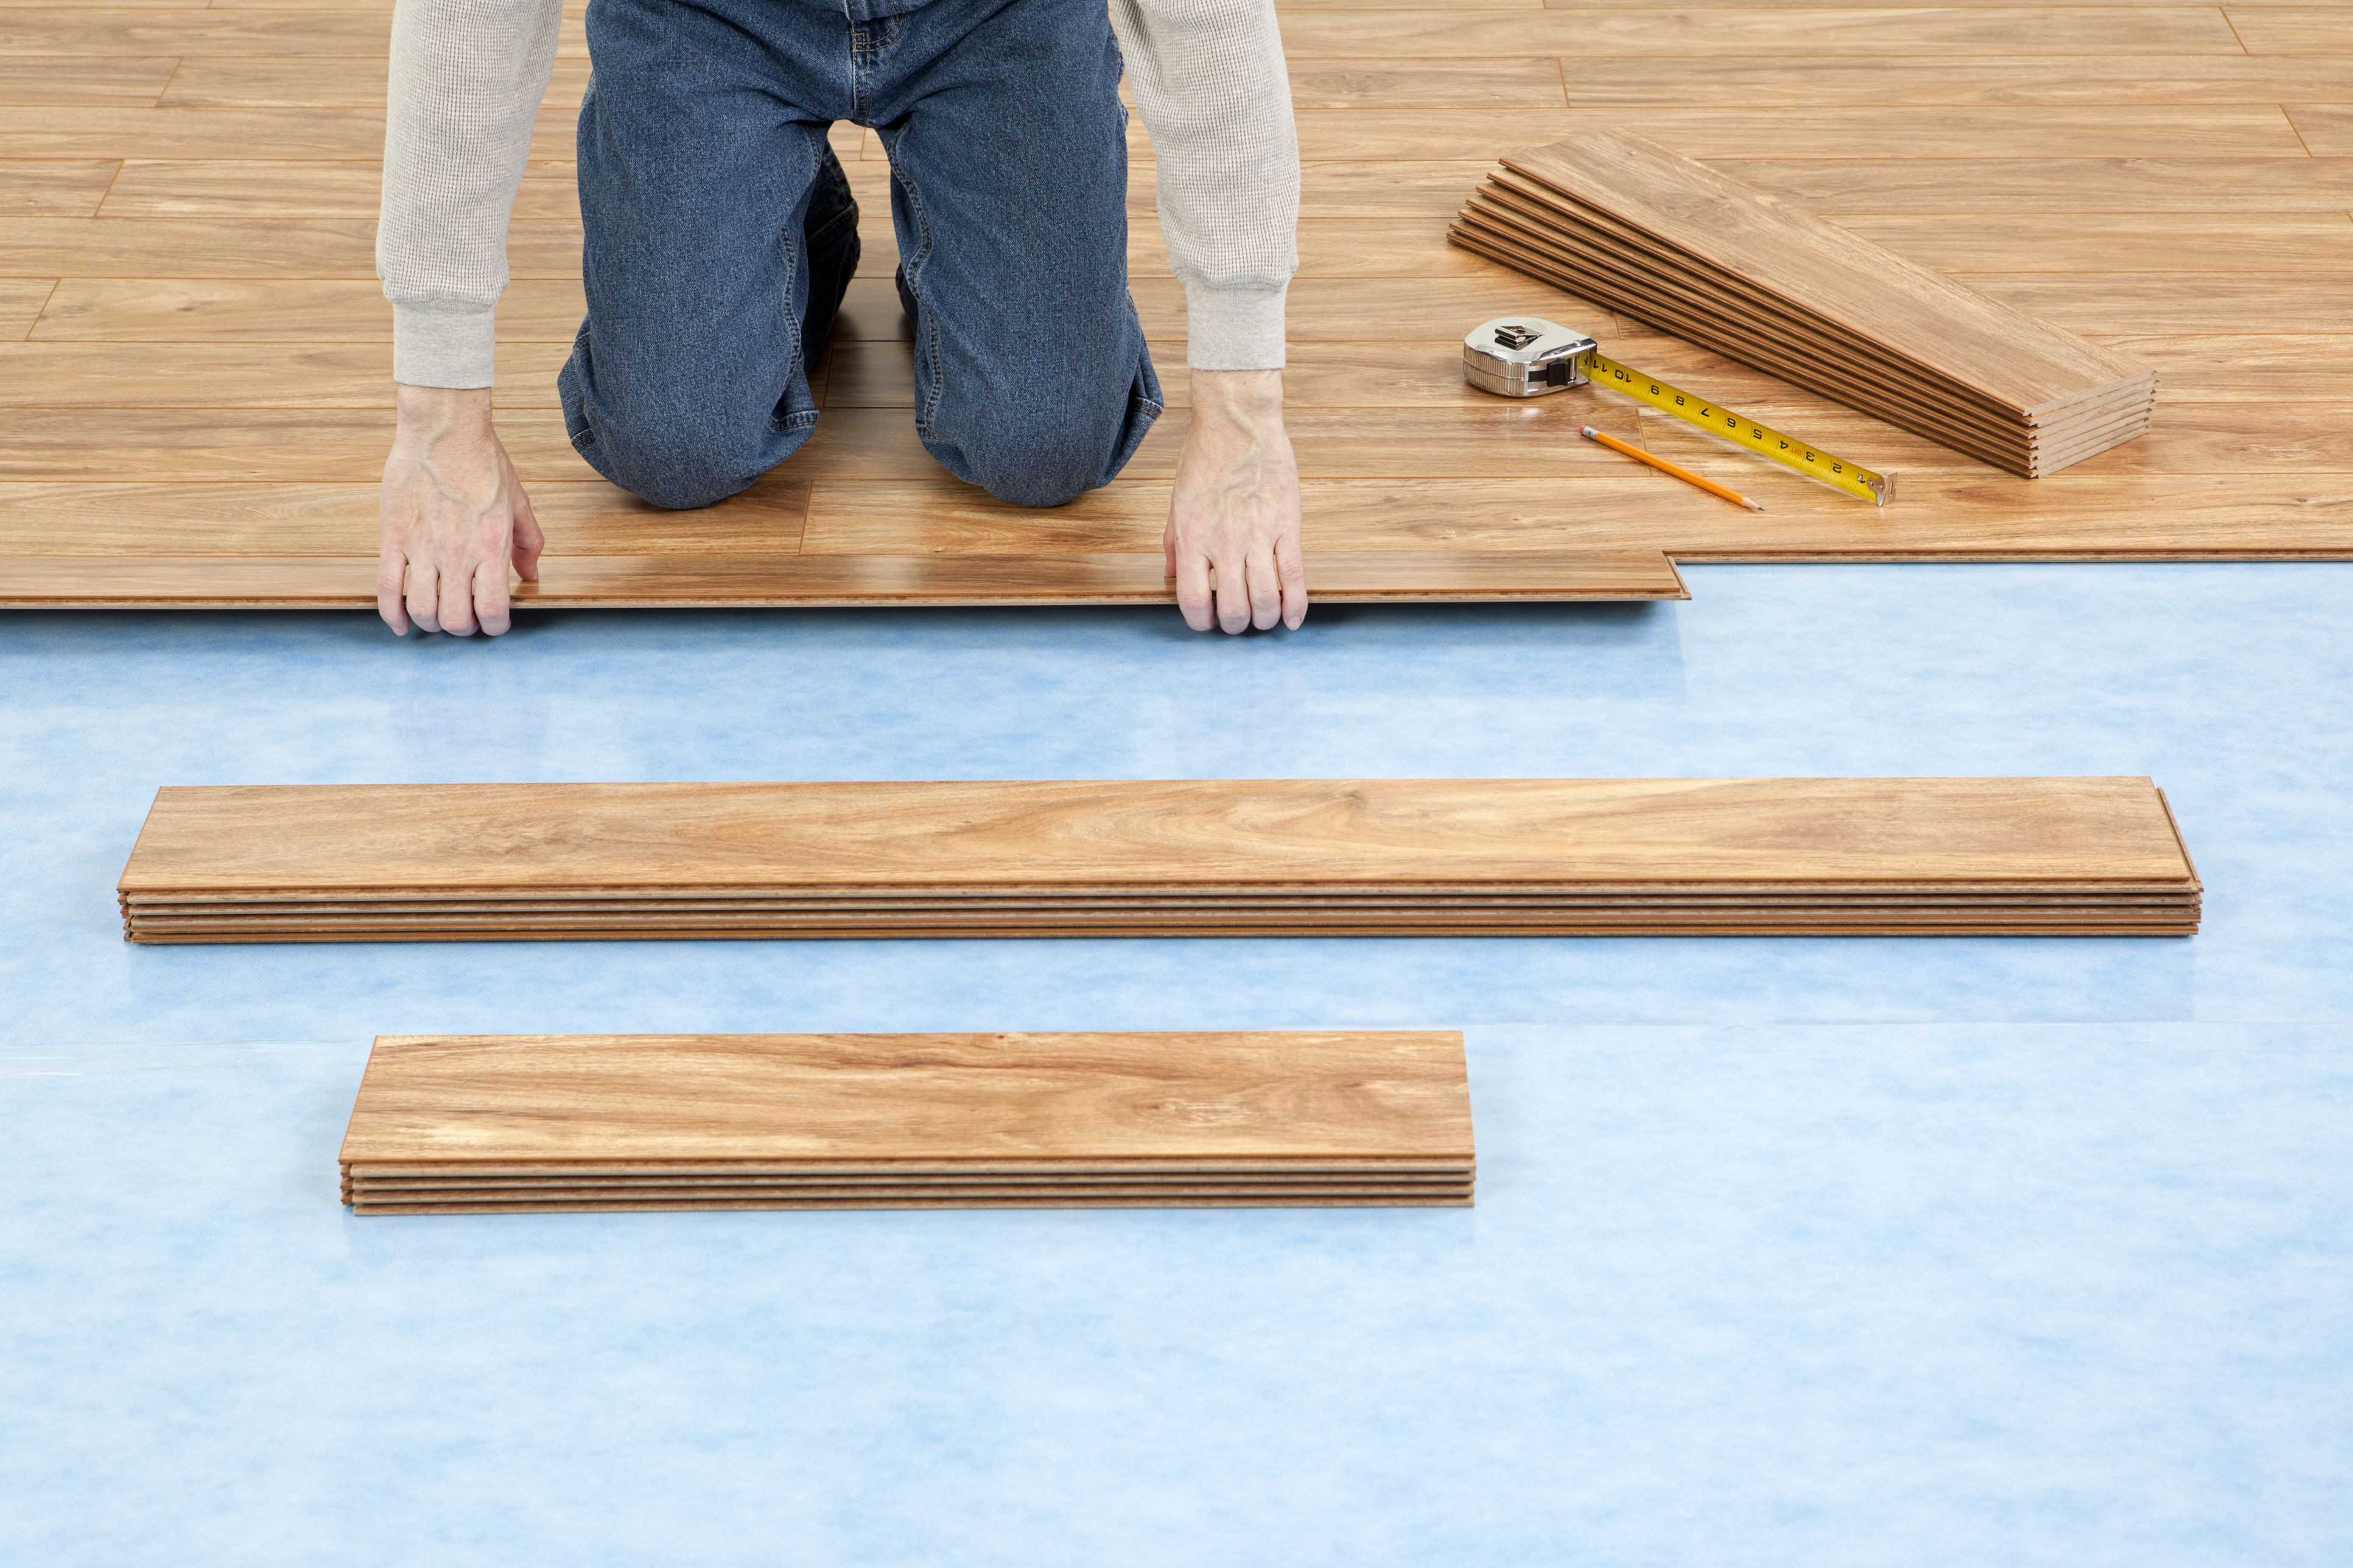 hardwood floor refinishing fort wayne in of installing laminate flooring with attached underlayment for new floor installation 155283725 582735c03df78c6f6af8ac80